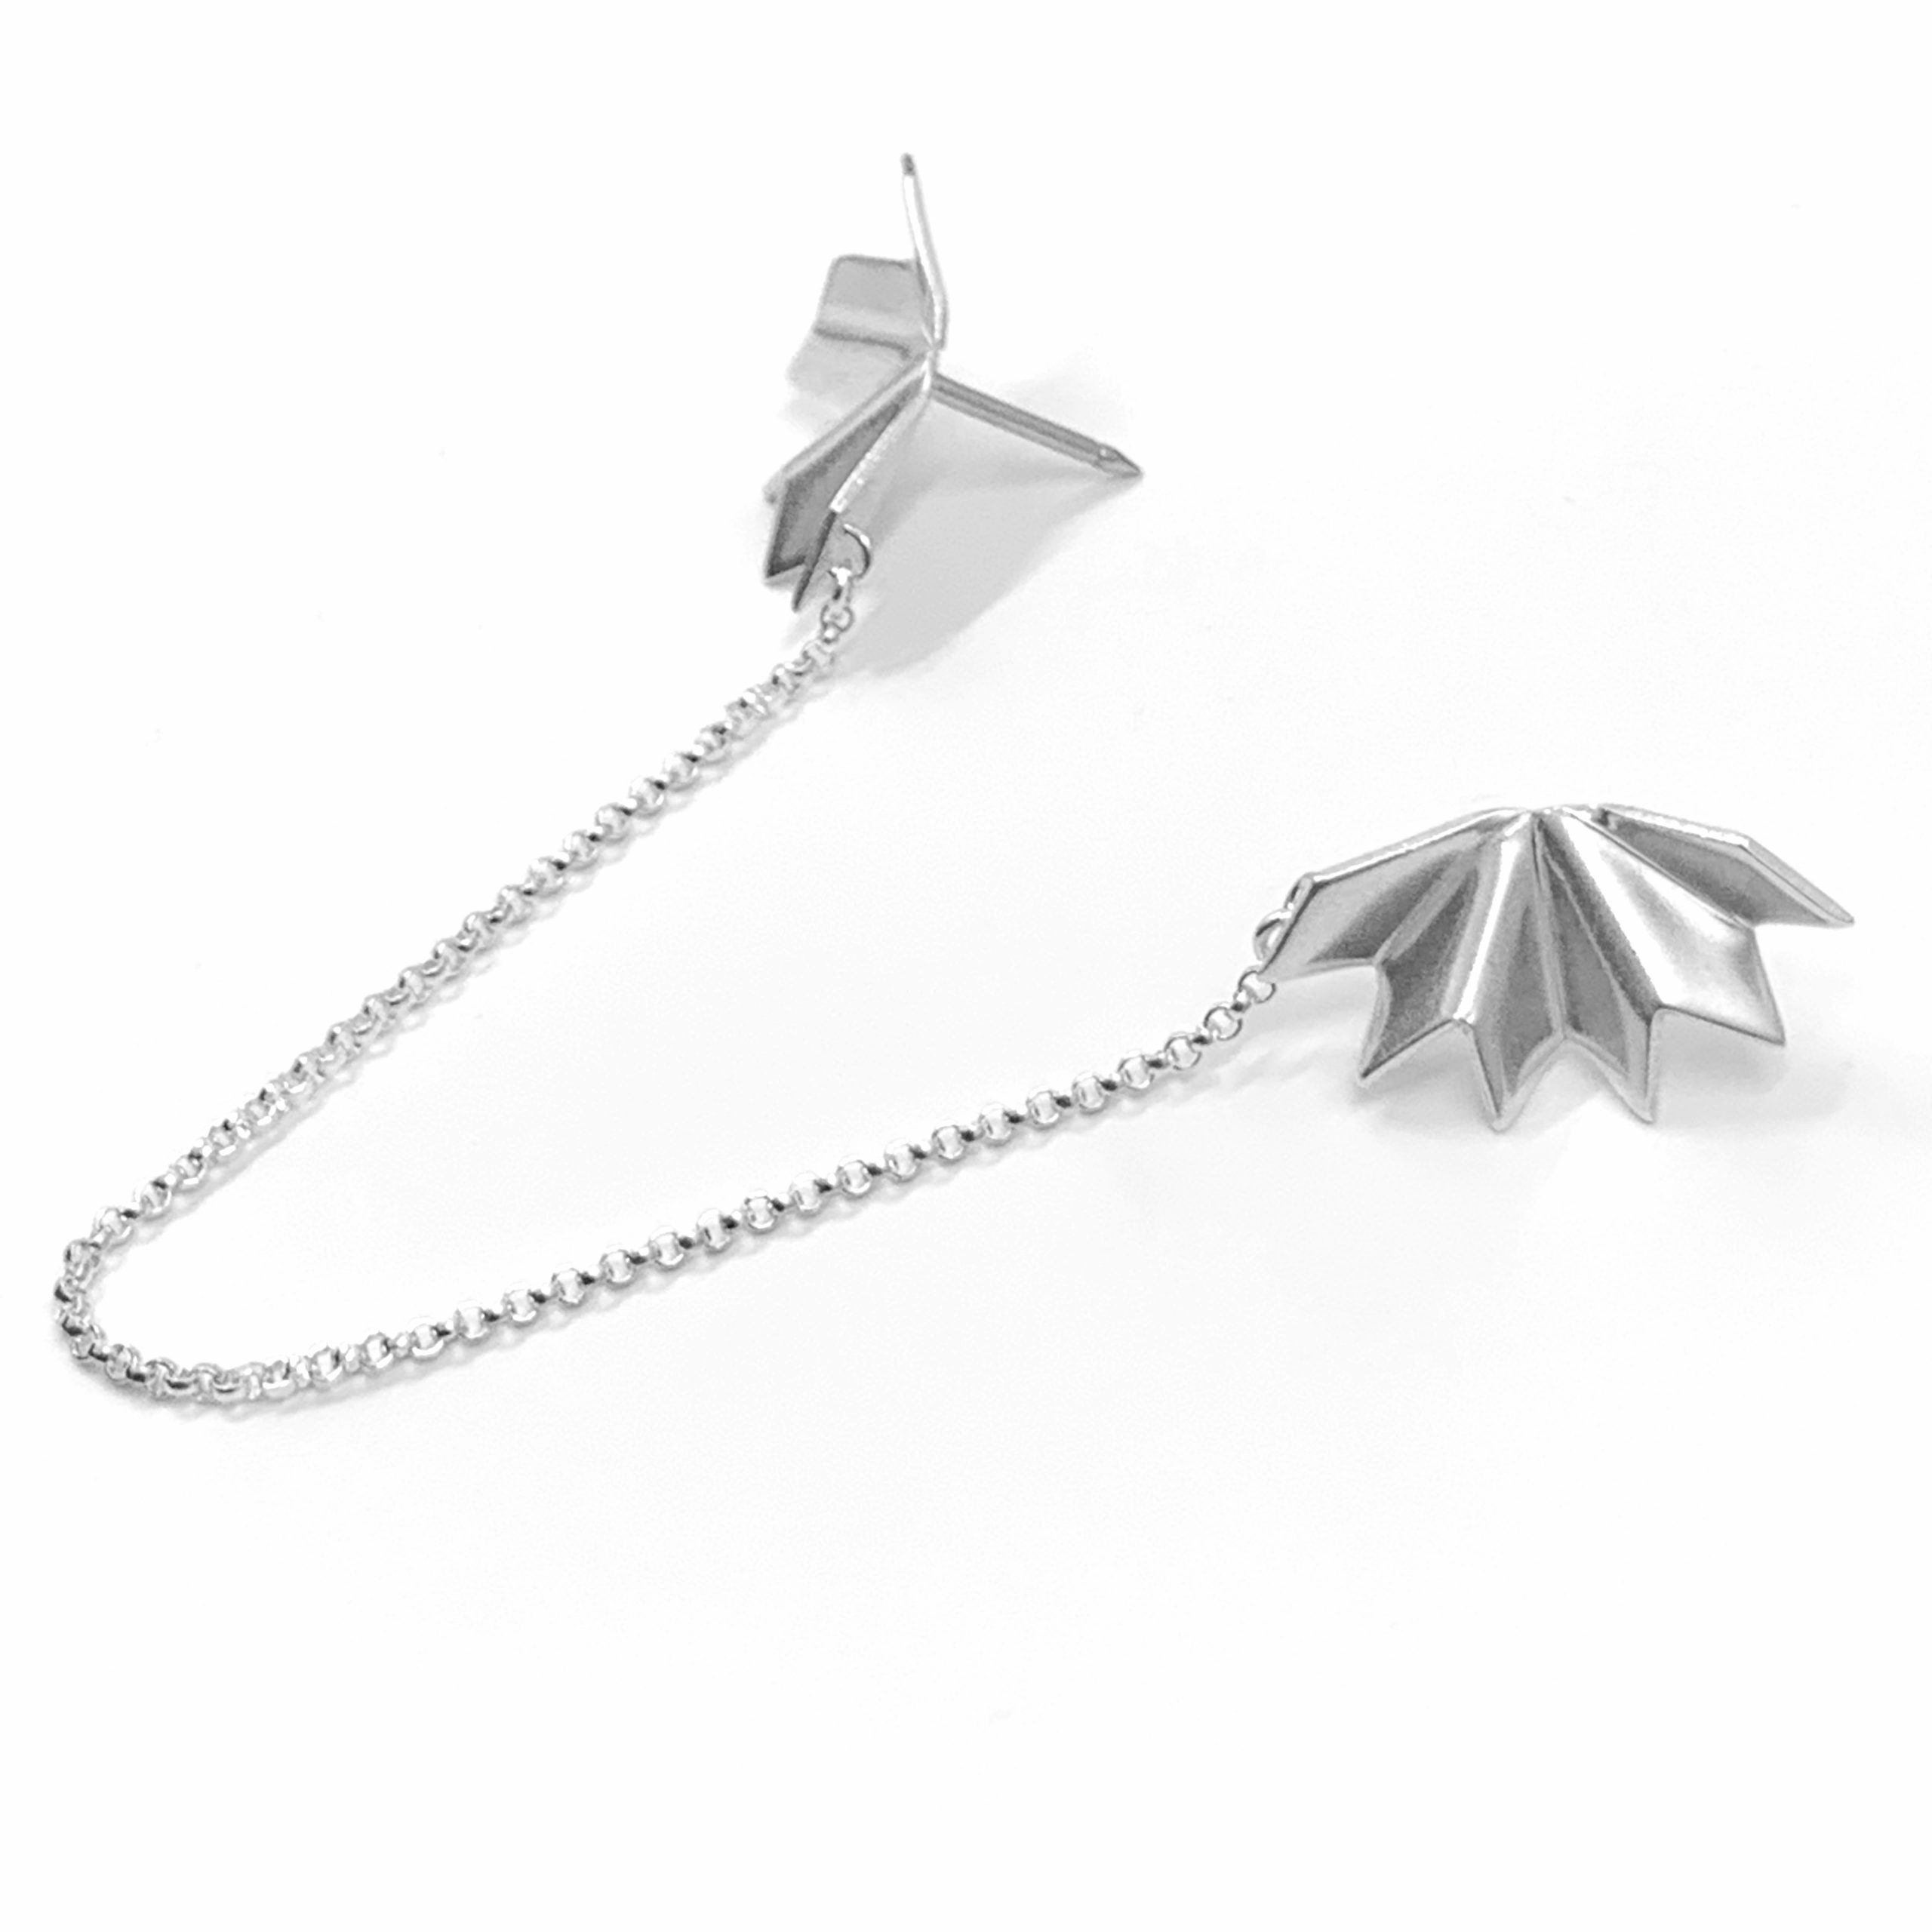 Unfolded silver collar pins